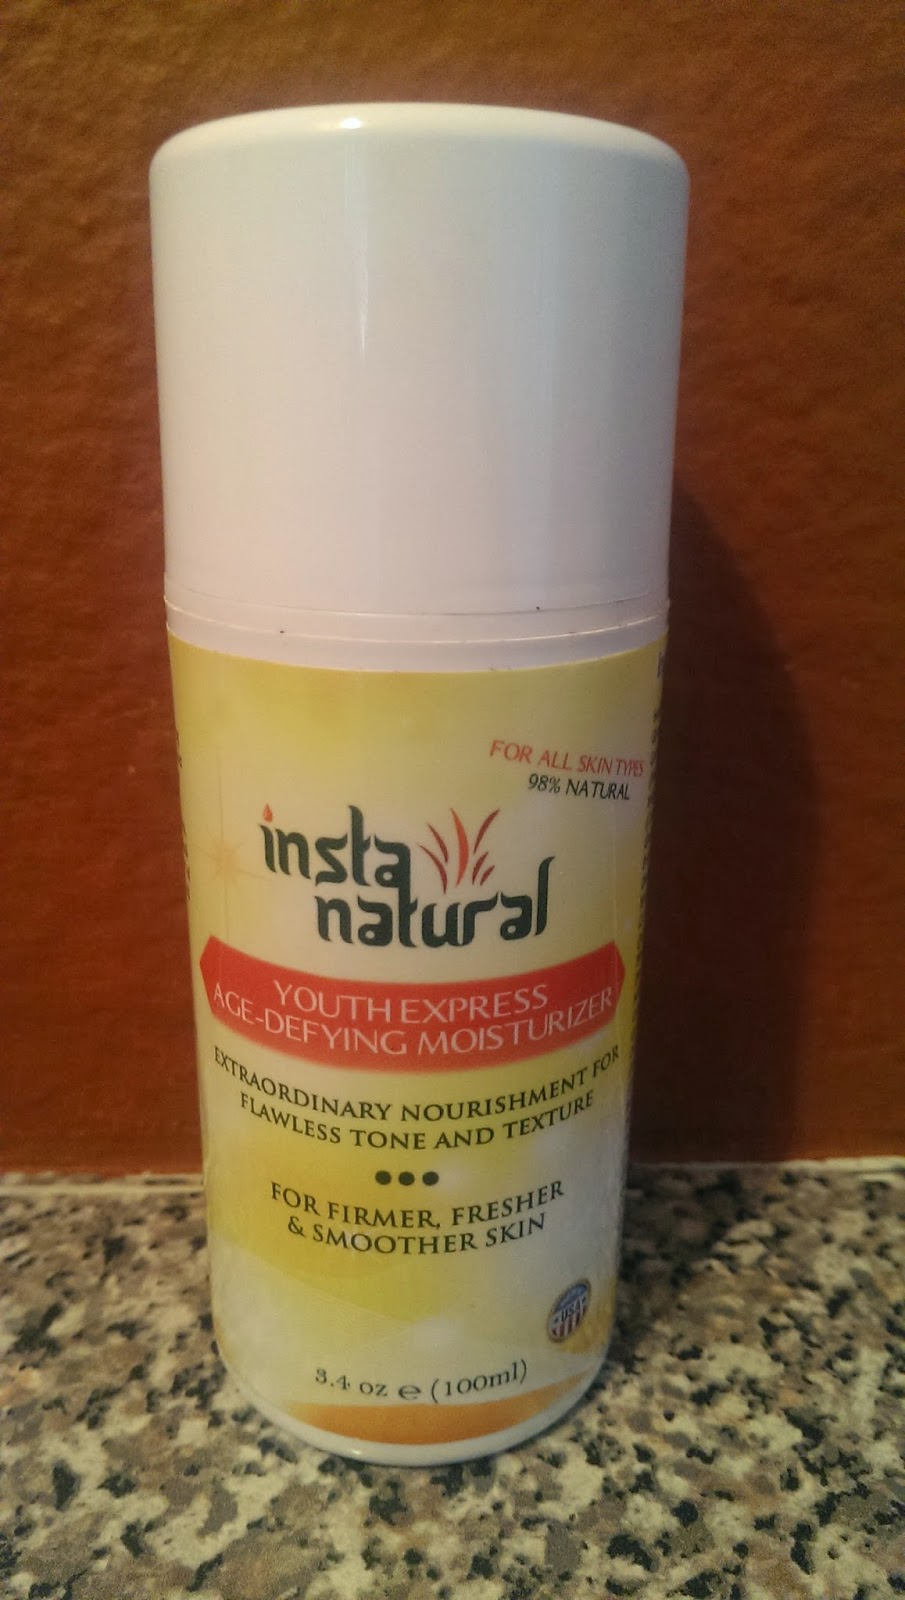 moisturizing+cream Age Defying Moisturizer Cream Review -  Anti Aging Skin Products #antiaging